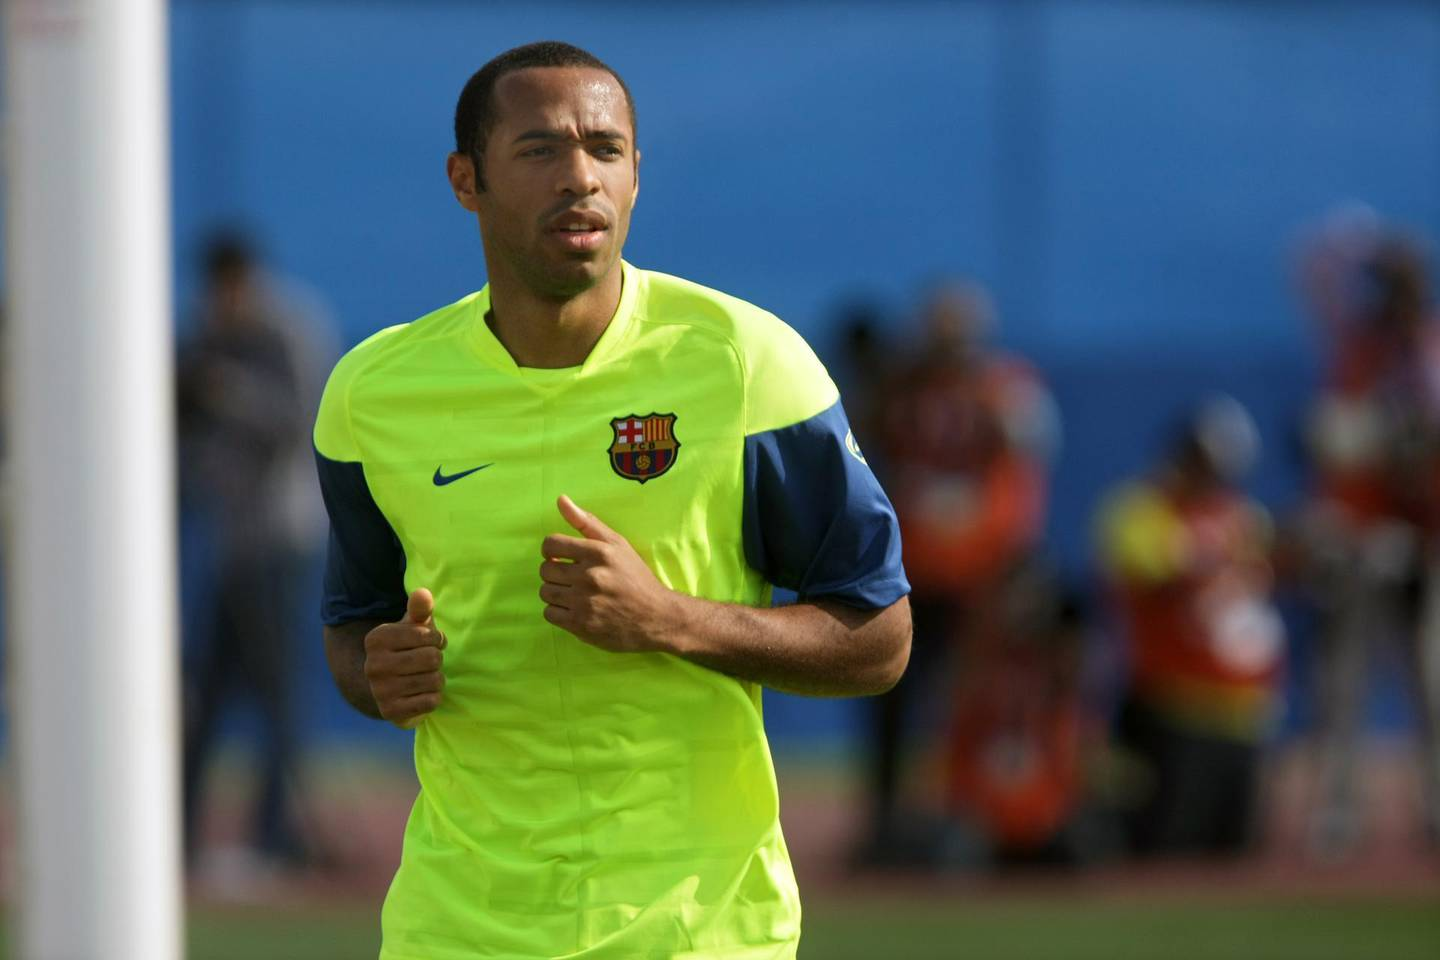 United Arab Emirates - Abu Dhabi - Dec 14 - 2009 :  Barcelona football player Thierry Henry during a training session at the officers club. ( Jaime Puebla / The National ) *** Local Caption ***  JP Barcelona 01.jpg